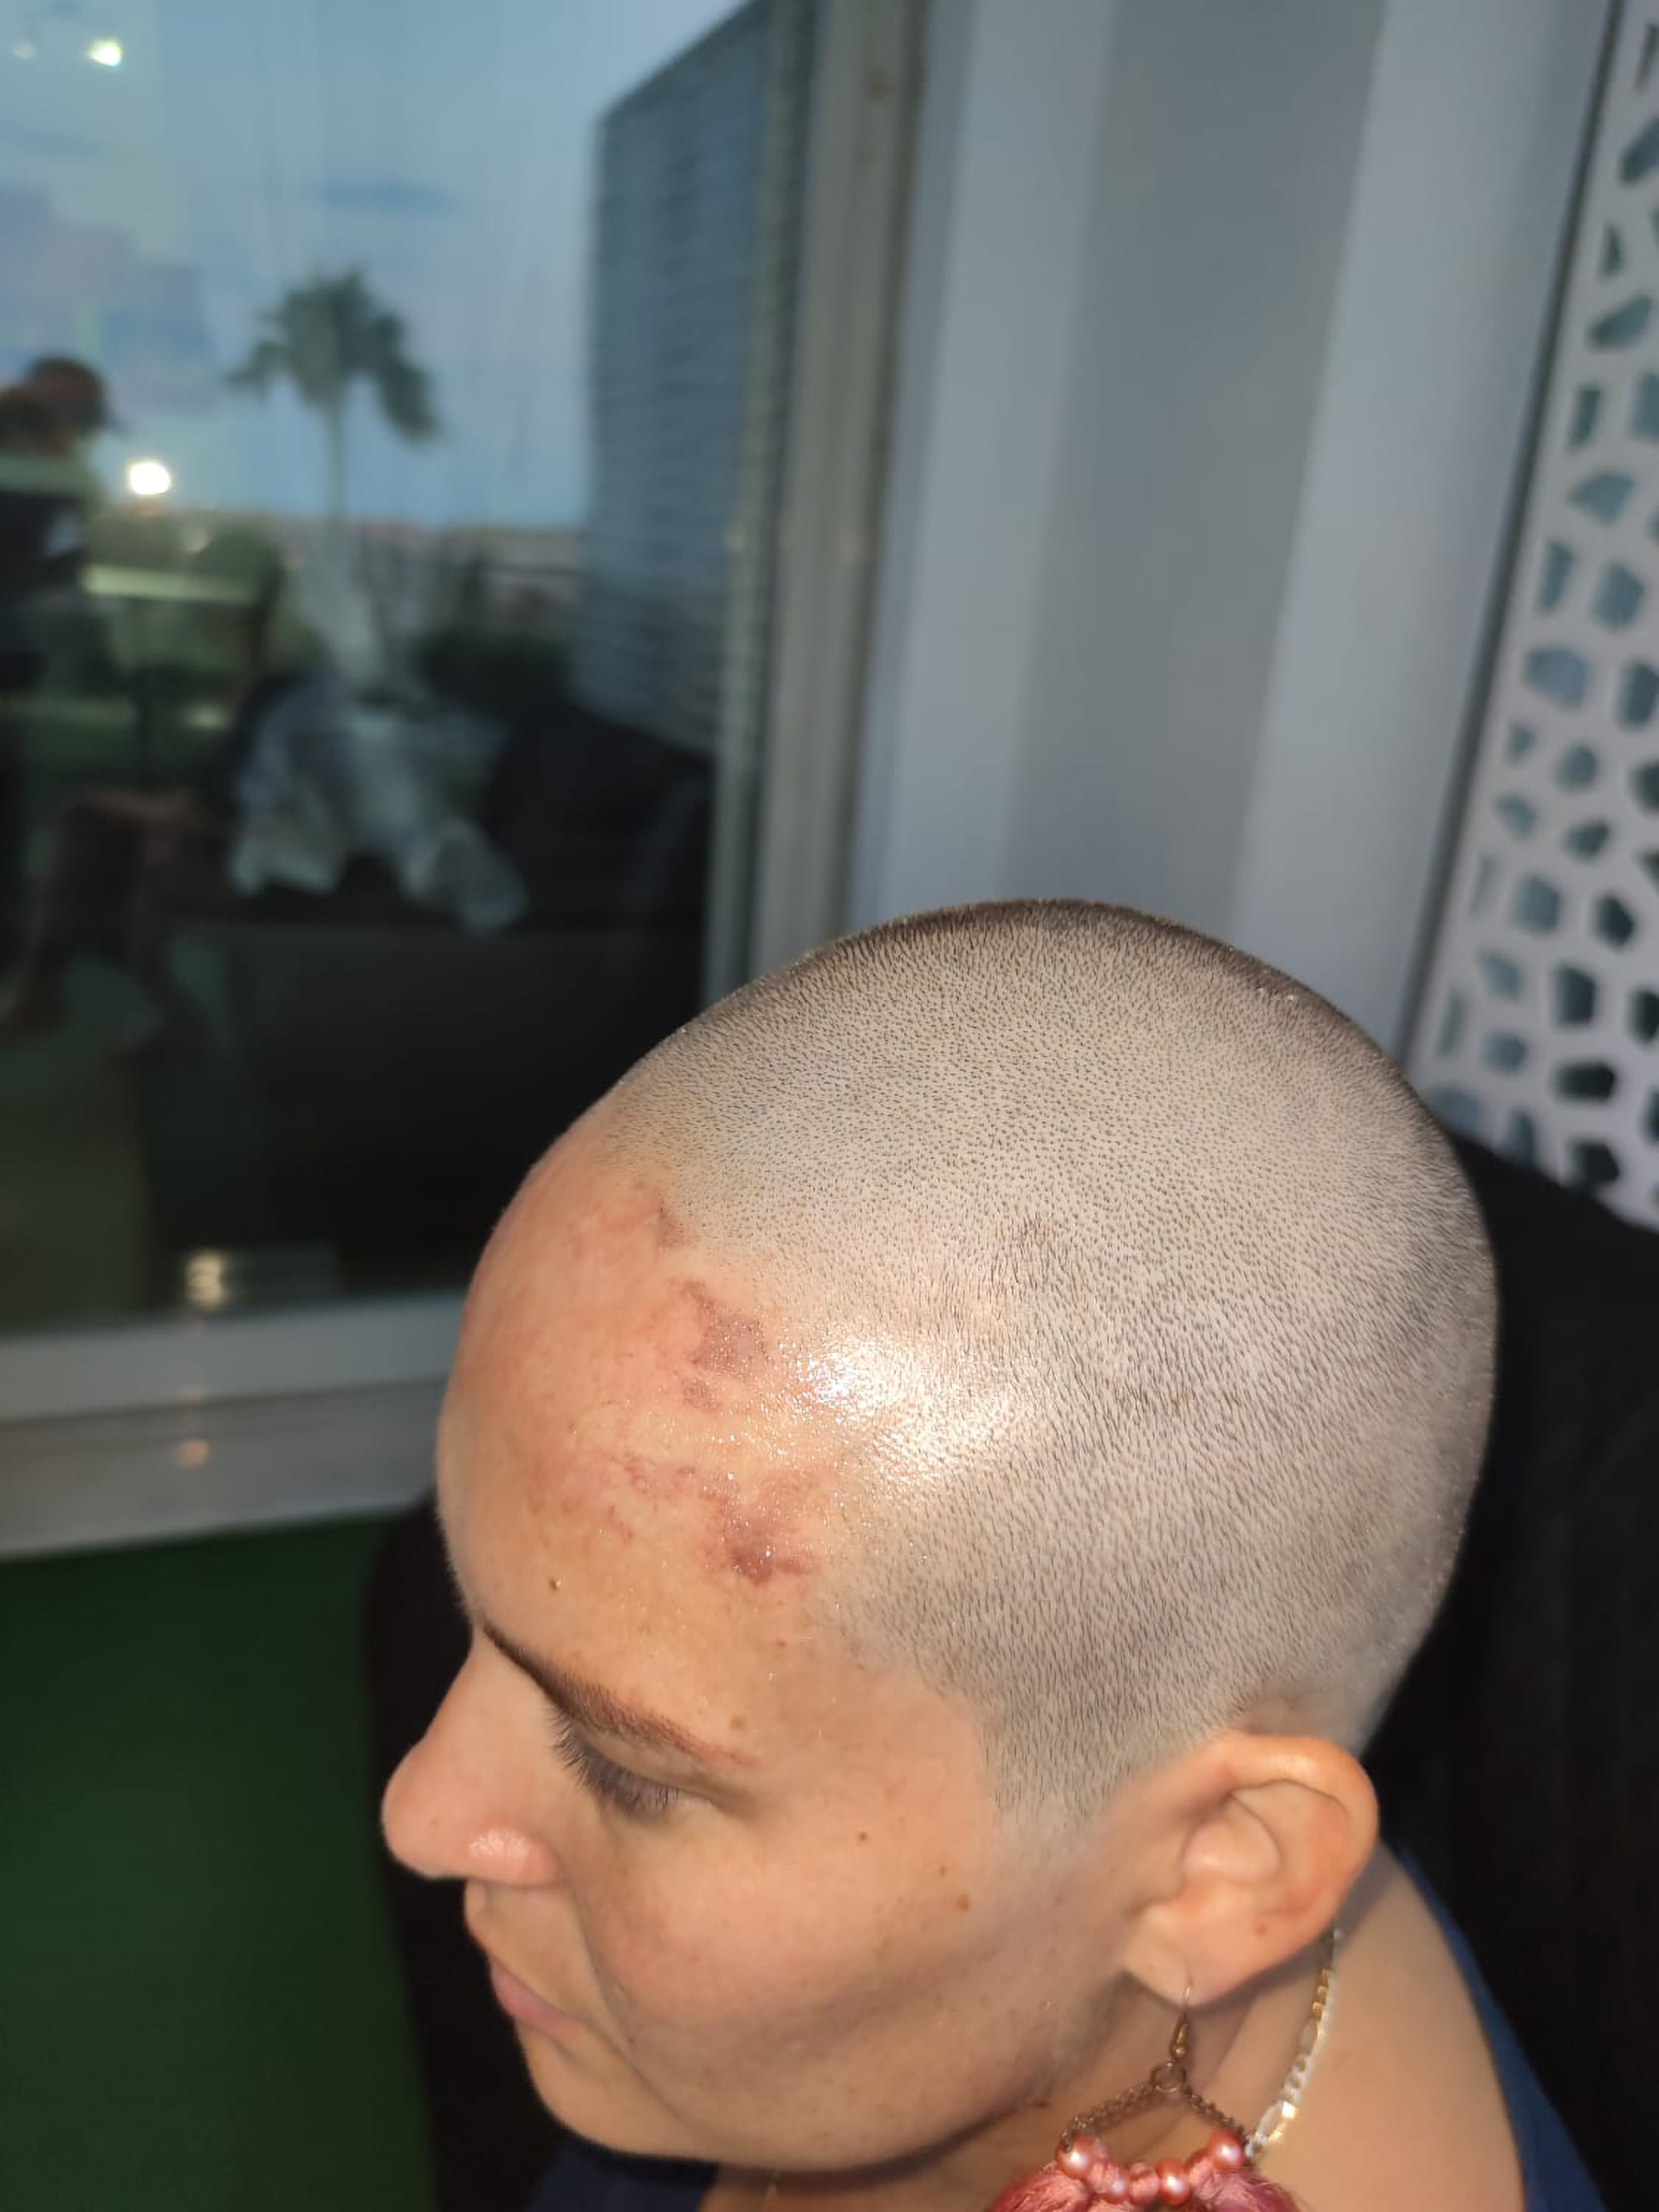 Woman Forced To Shave Head After Attacker Stuck Glue-Filled Hat On Her